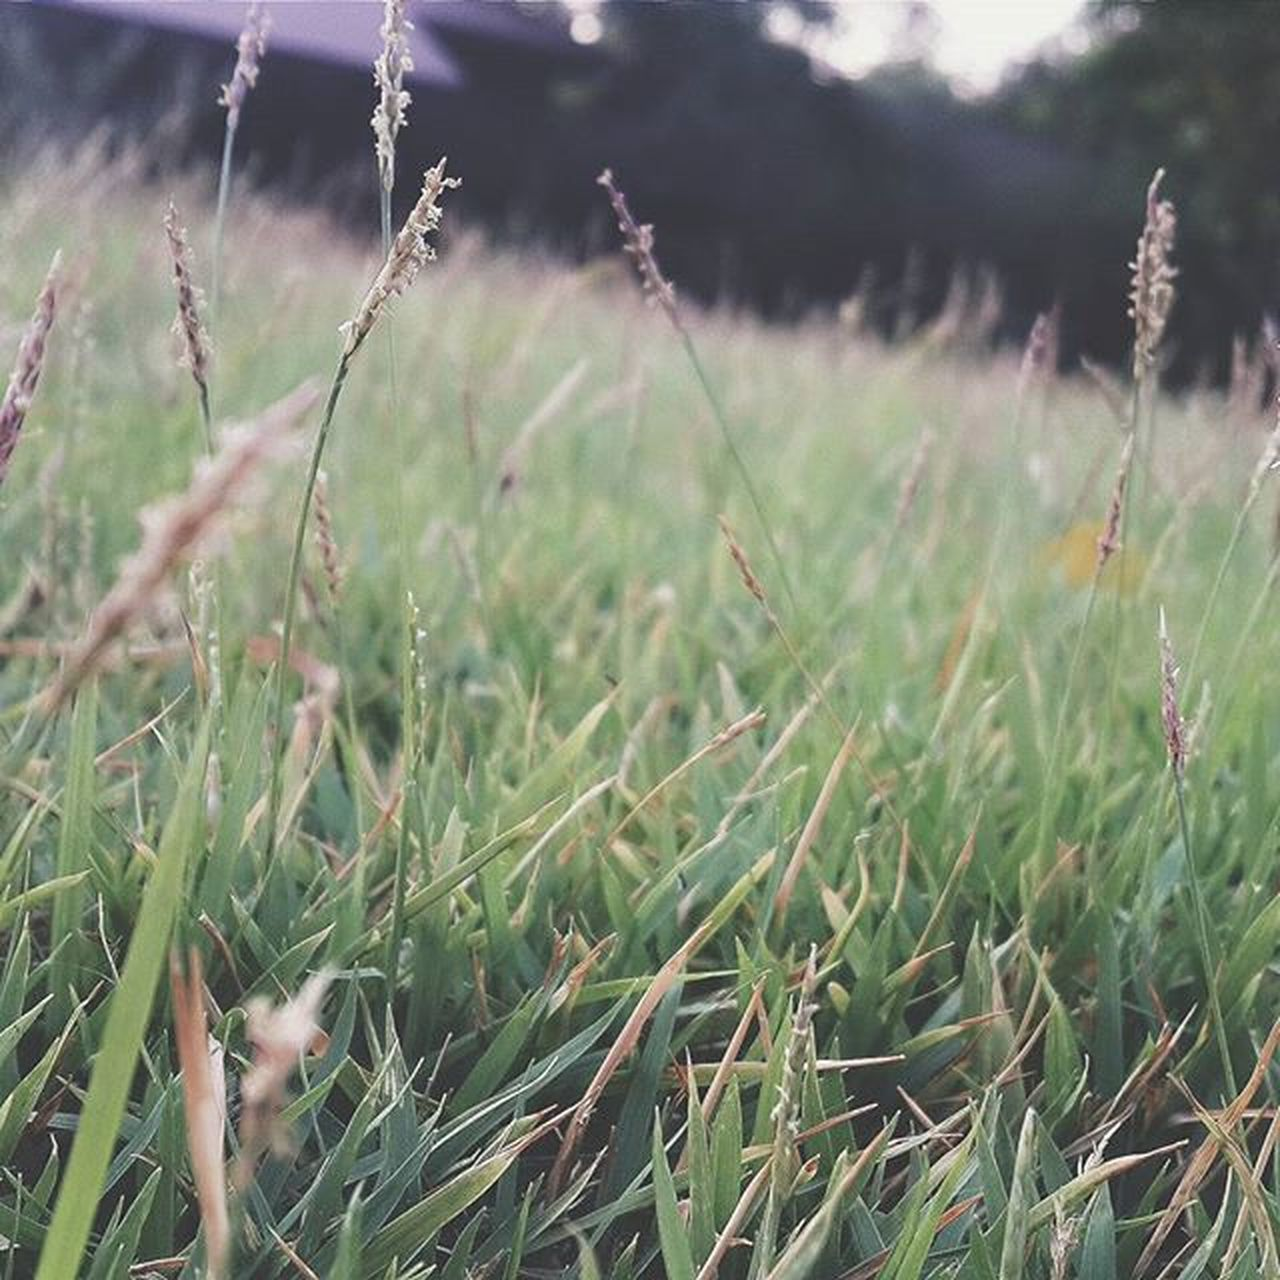 grass, growth, field, nature, day, no people, plant, outdoors, tranquility, close-up, beauty in nature, freshness